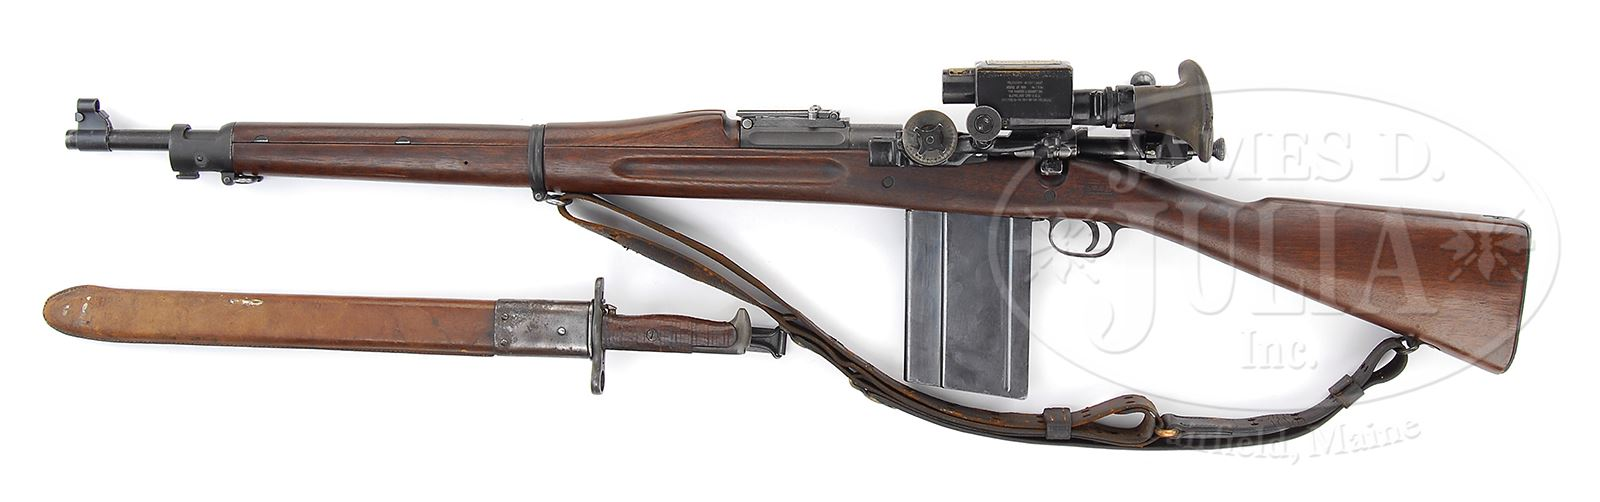 US SPRINGFIELD MODEL 1903 RIFLE WITH DETACHABLE 20 RND